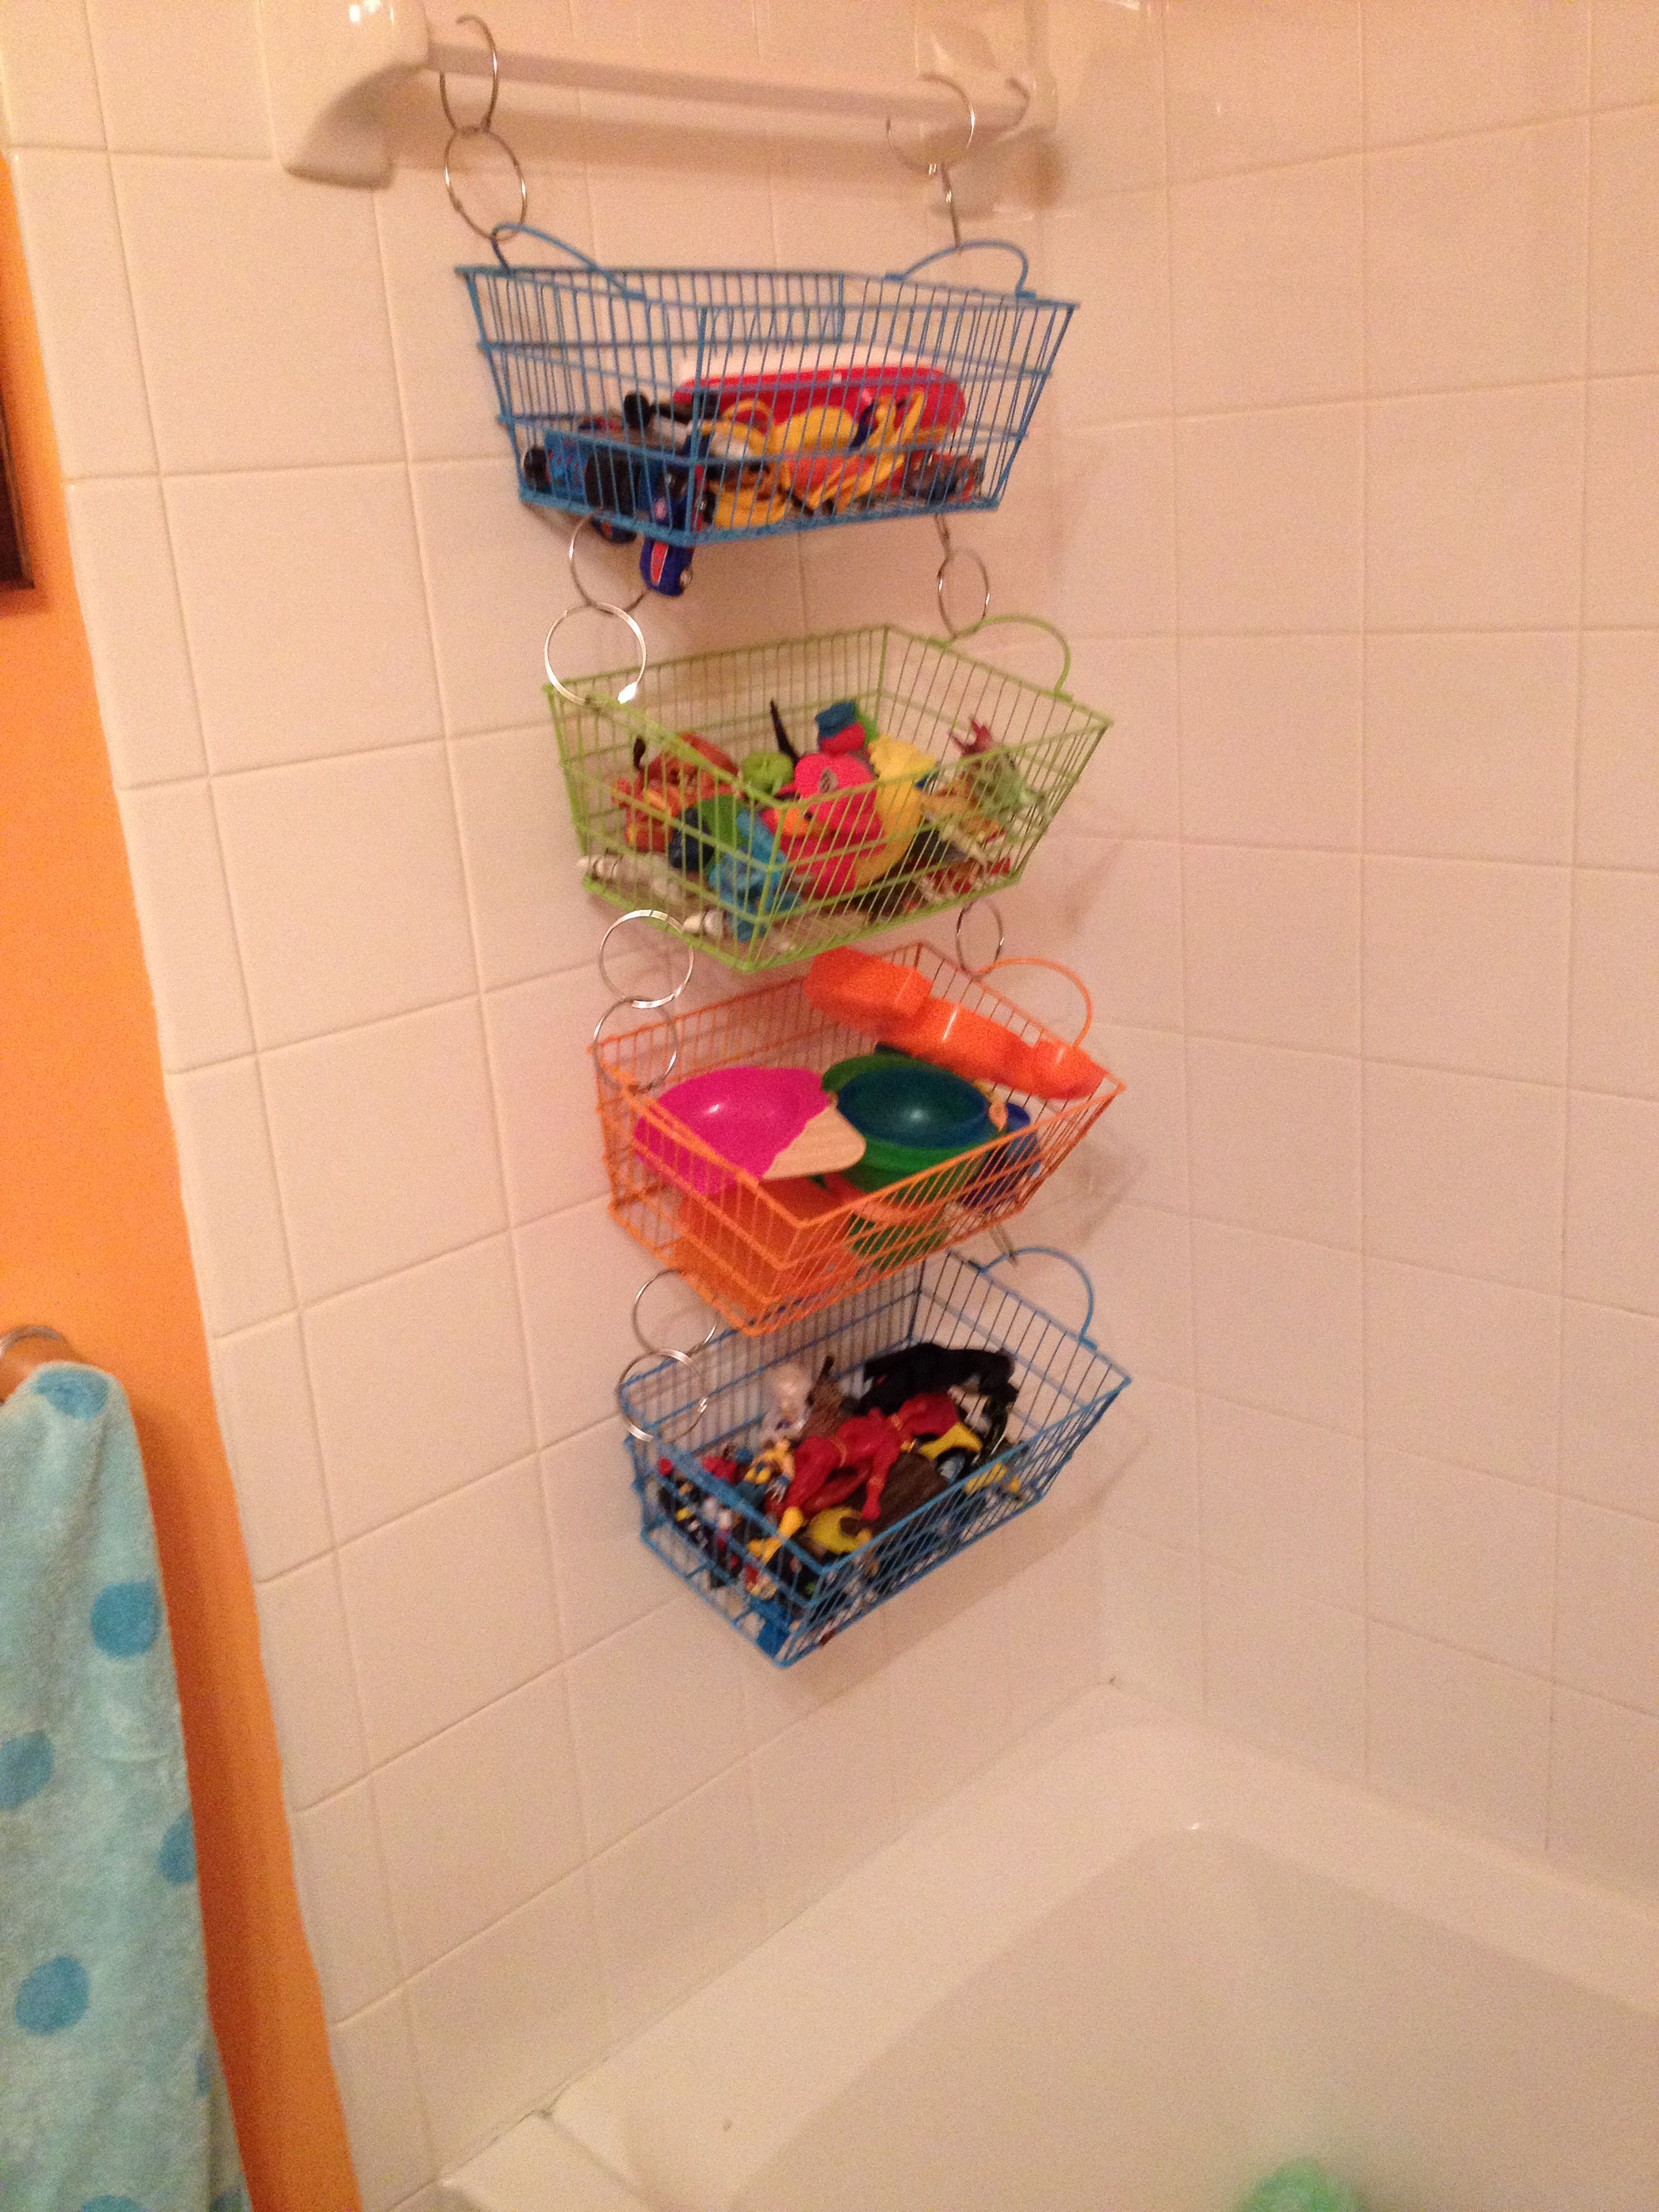 Tub Toy Organization 5 Rubber Coated Baskets From 5 Below